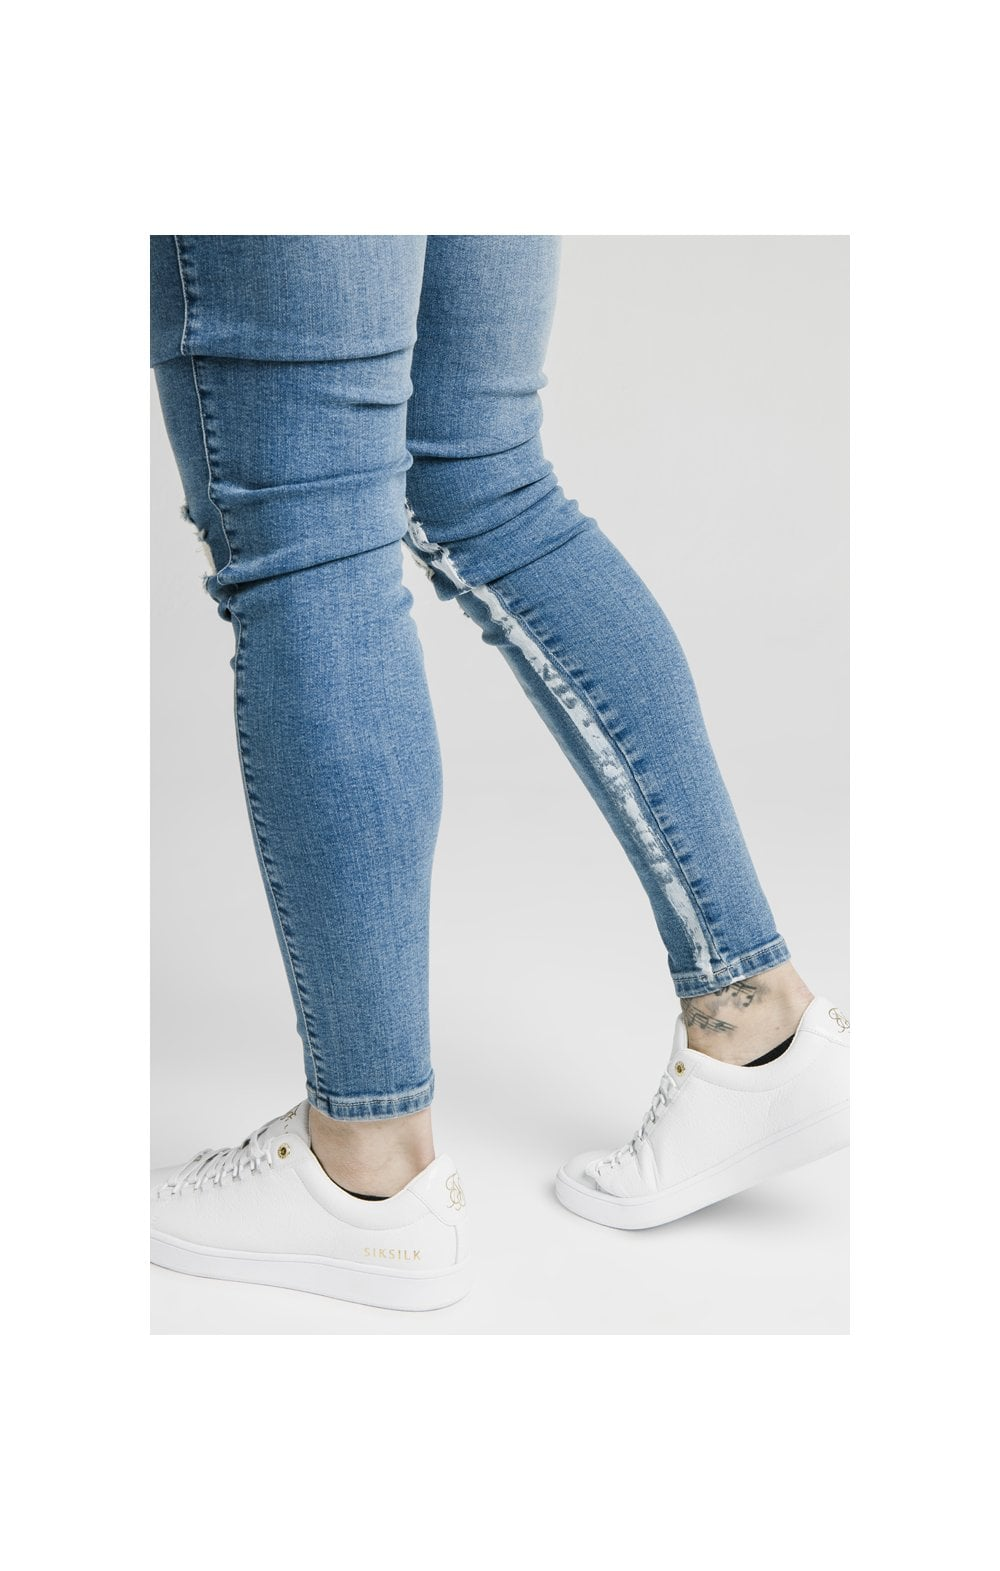 Load image into Gallery viewer, SikSilk Skinny Distressed Paint Stripe Denims - Midstone & White (1)